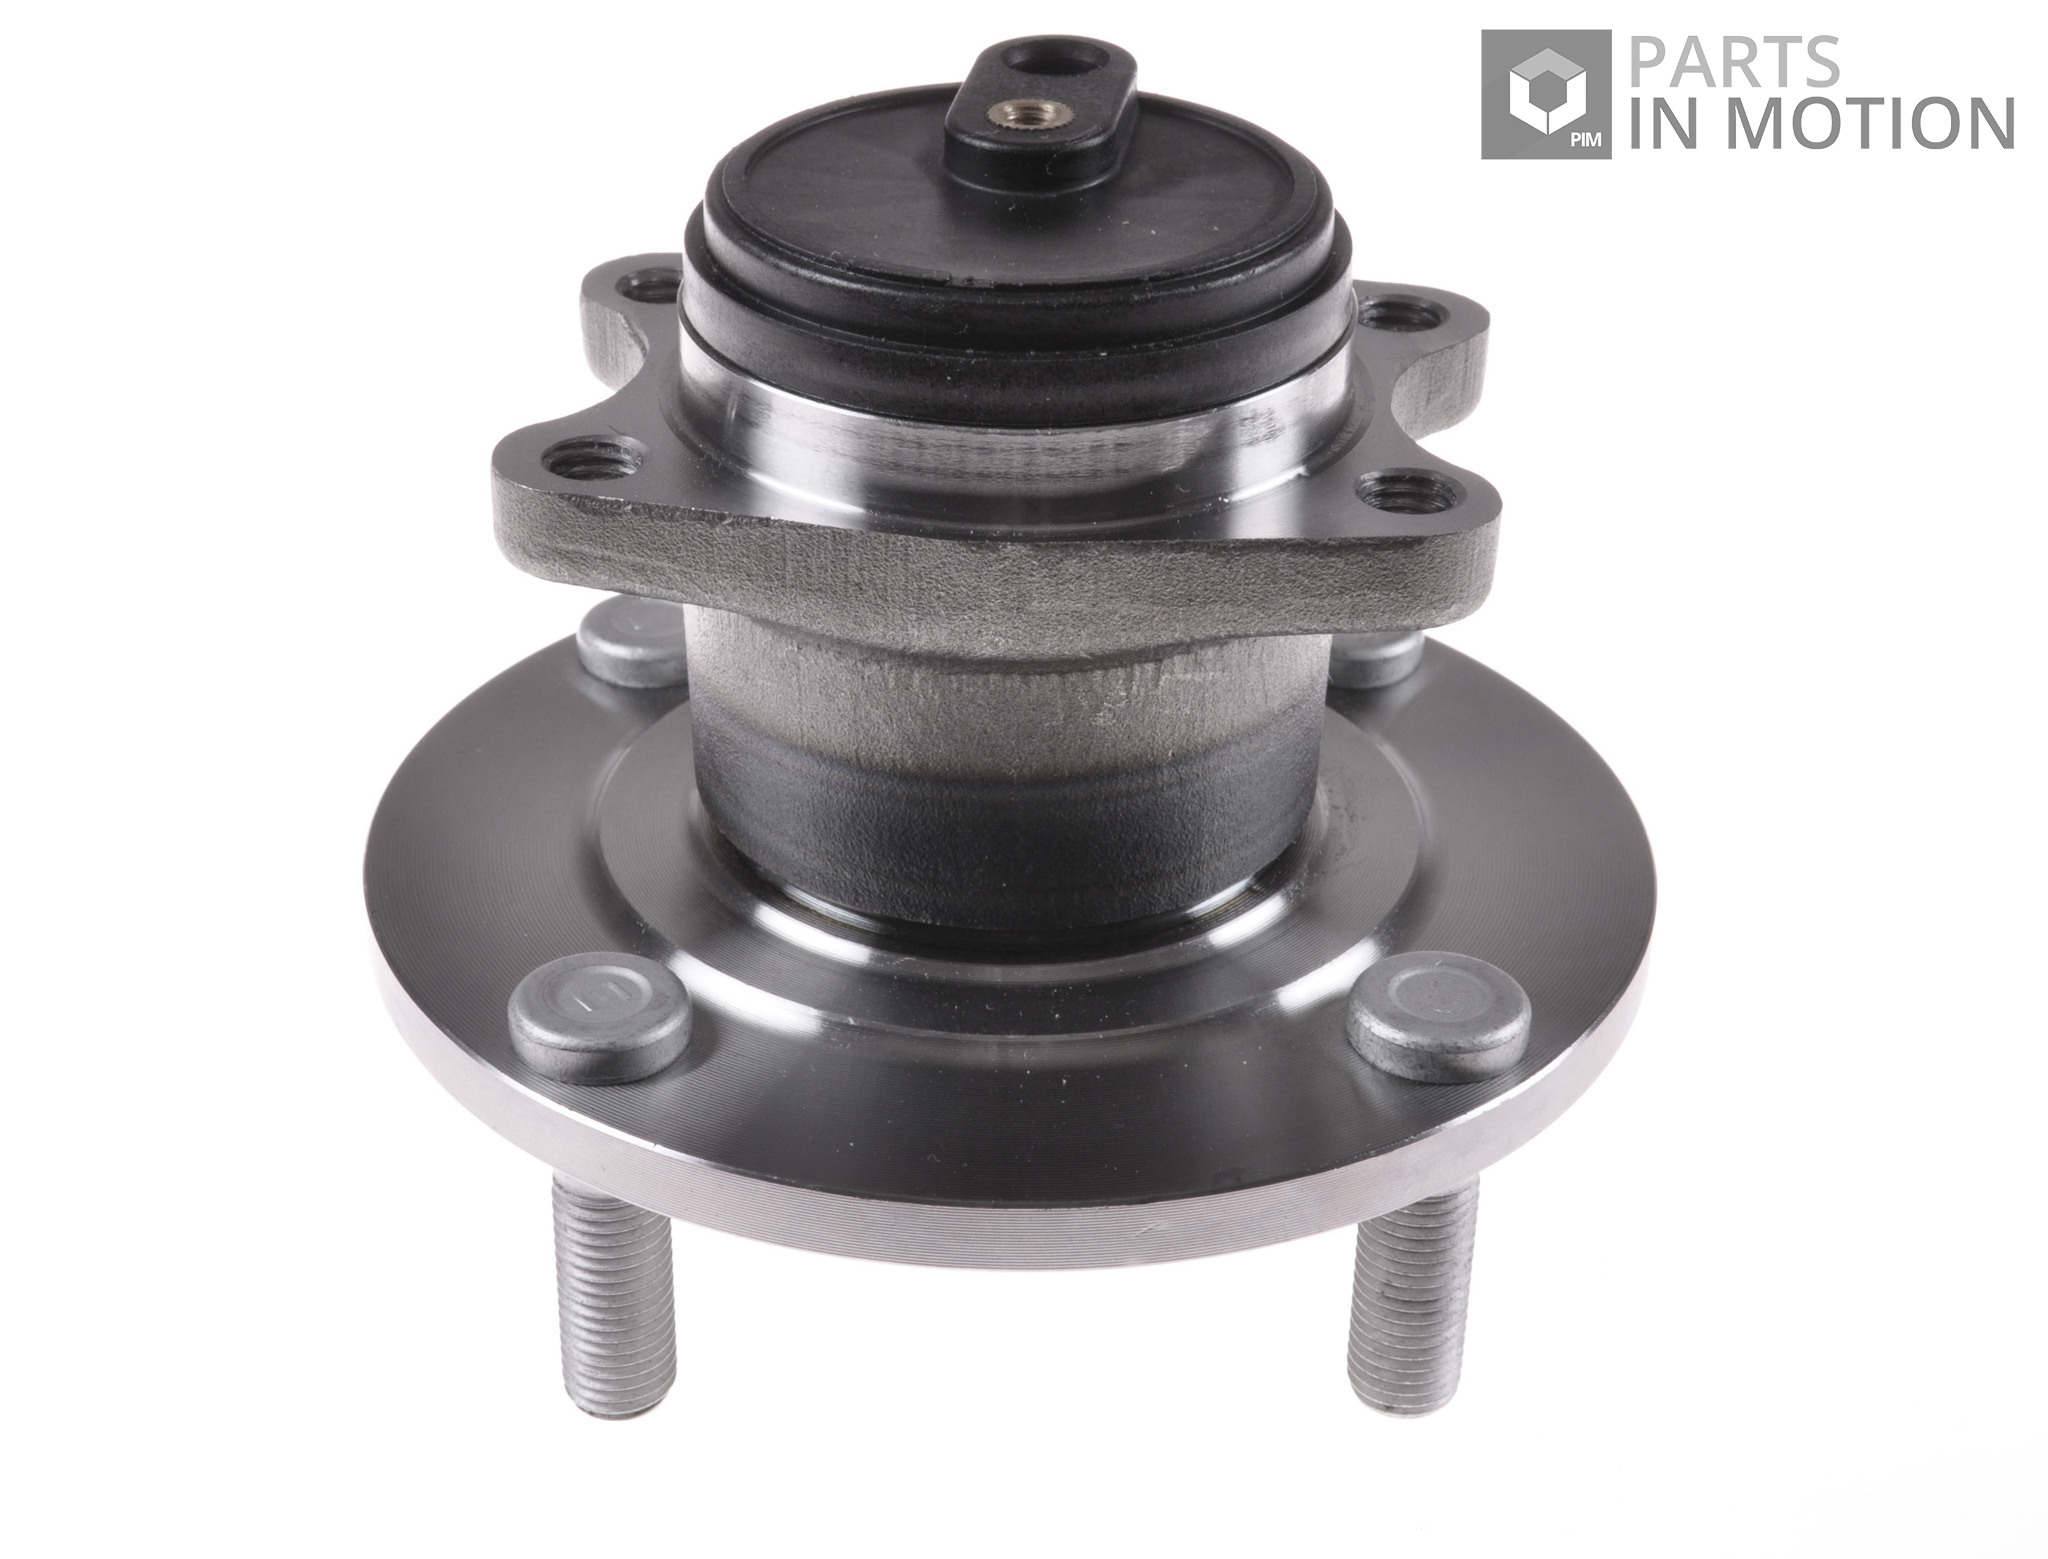 SMART FORFOUR 1.5D Wheel Bearing Kit Rear Left or Right 04 to 06 ADC48350 New